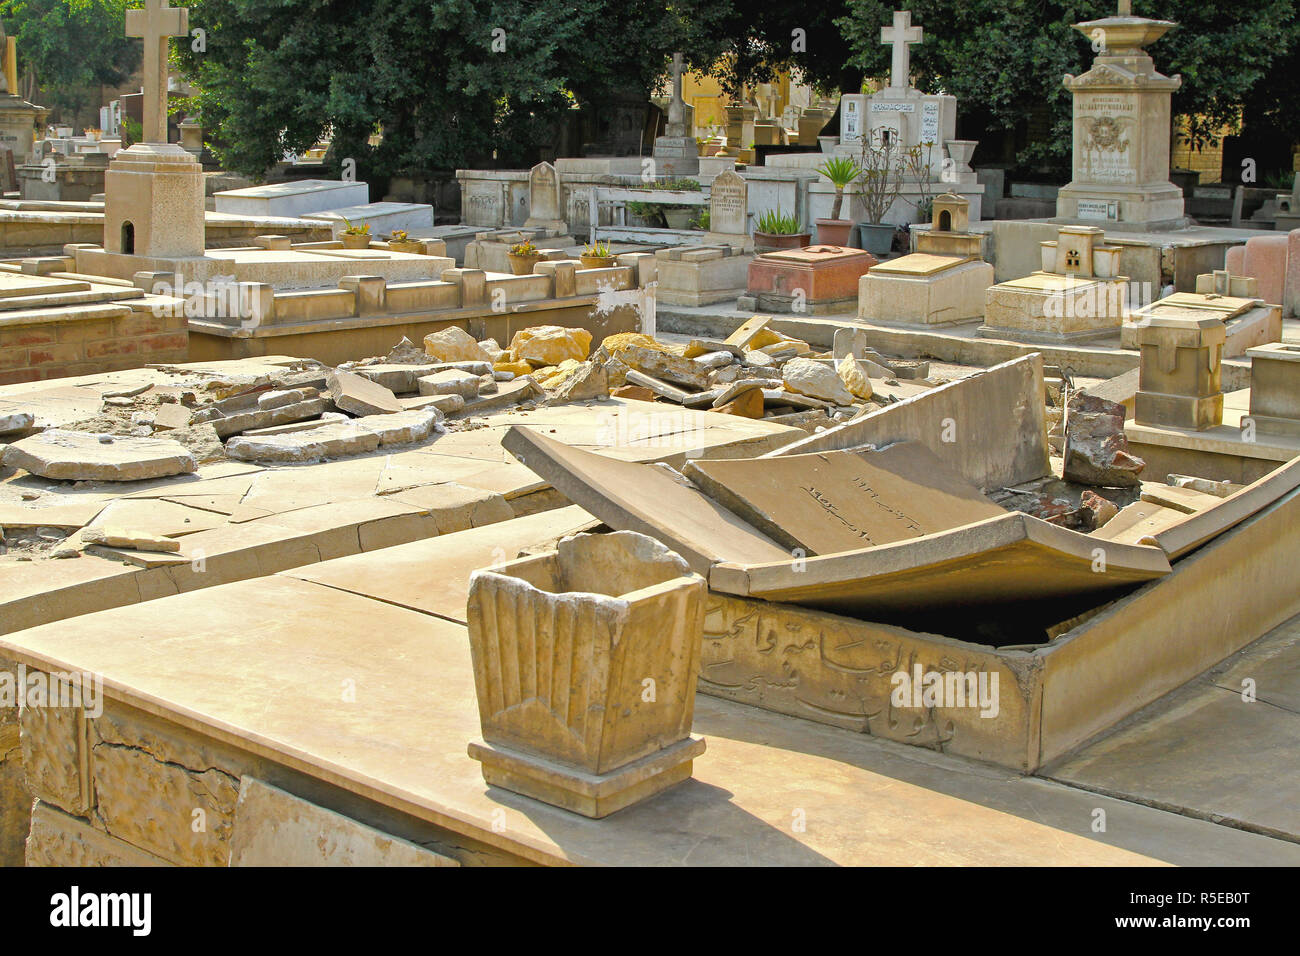 CAIRO, EGYPT - MARCH 01: Desecrated Tombs at Graveyard in Cairo on MARCH 01, 2010. Destroyed and Ruined Graves at Cemetery in Cairo, Egypt. - Stock Image